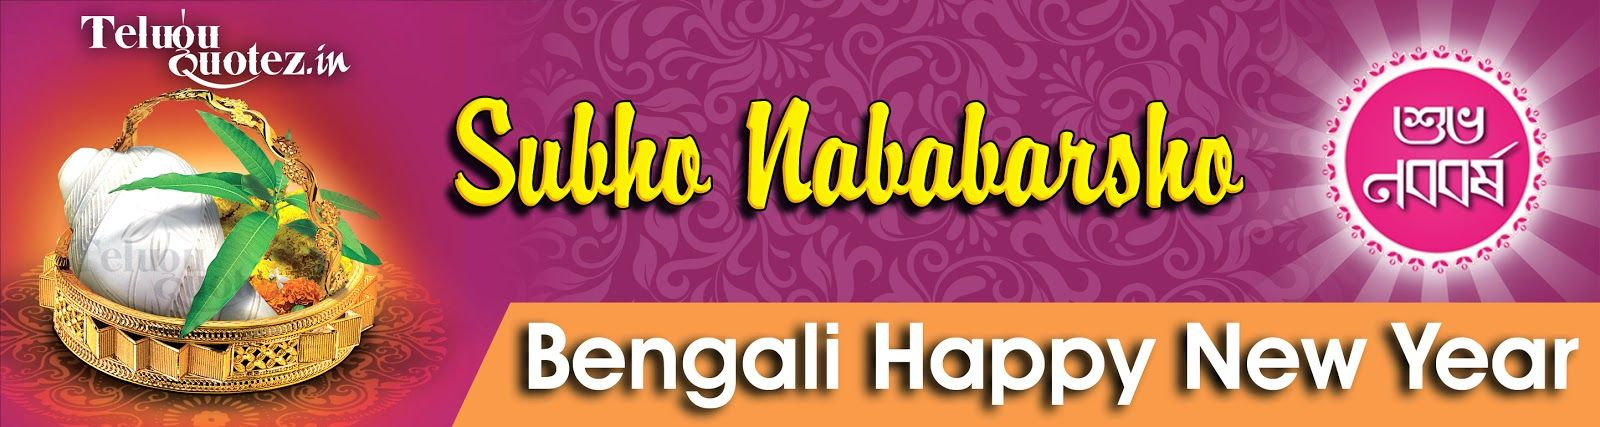 Teluguquotez.in: new year wishes quotes in bengali | Quotes ...